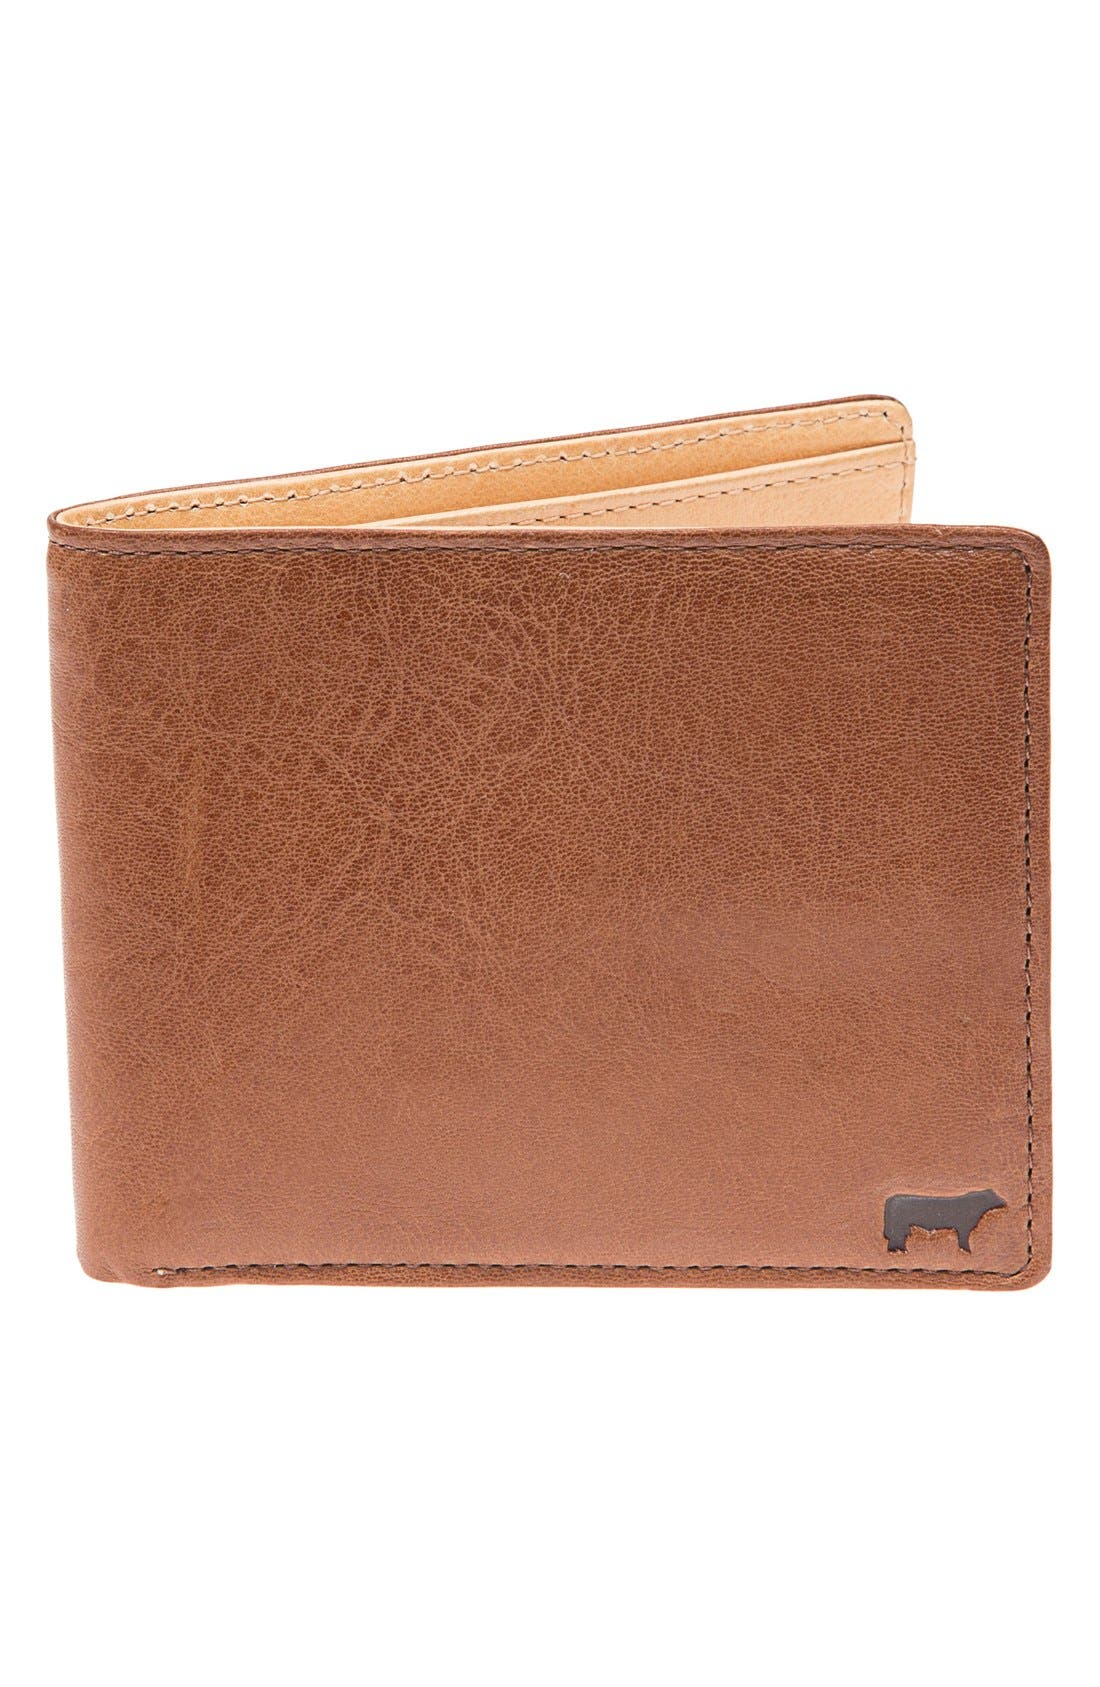 Main Image - Will Leather Goods 'Barnard' Wallet